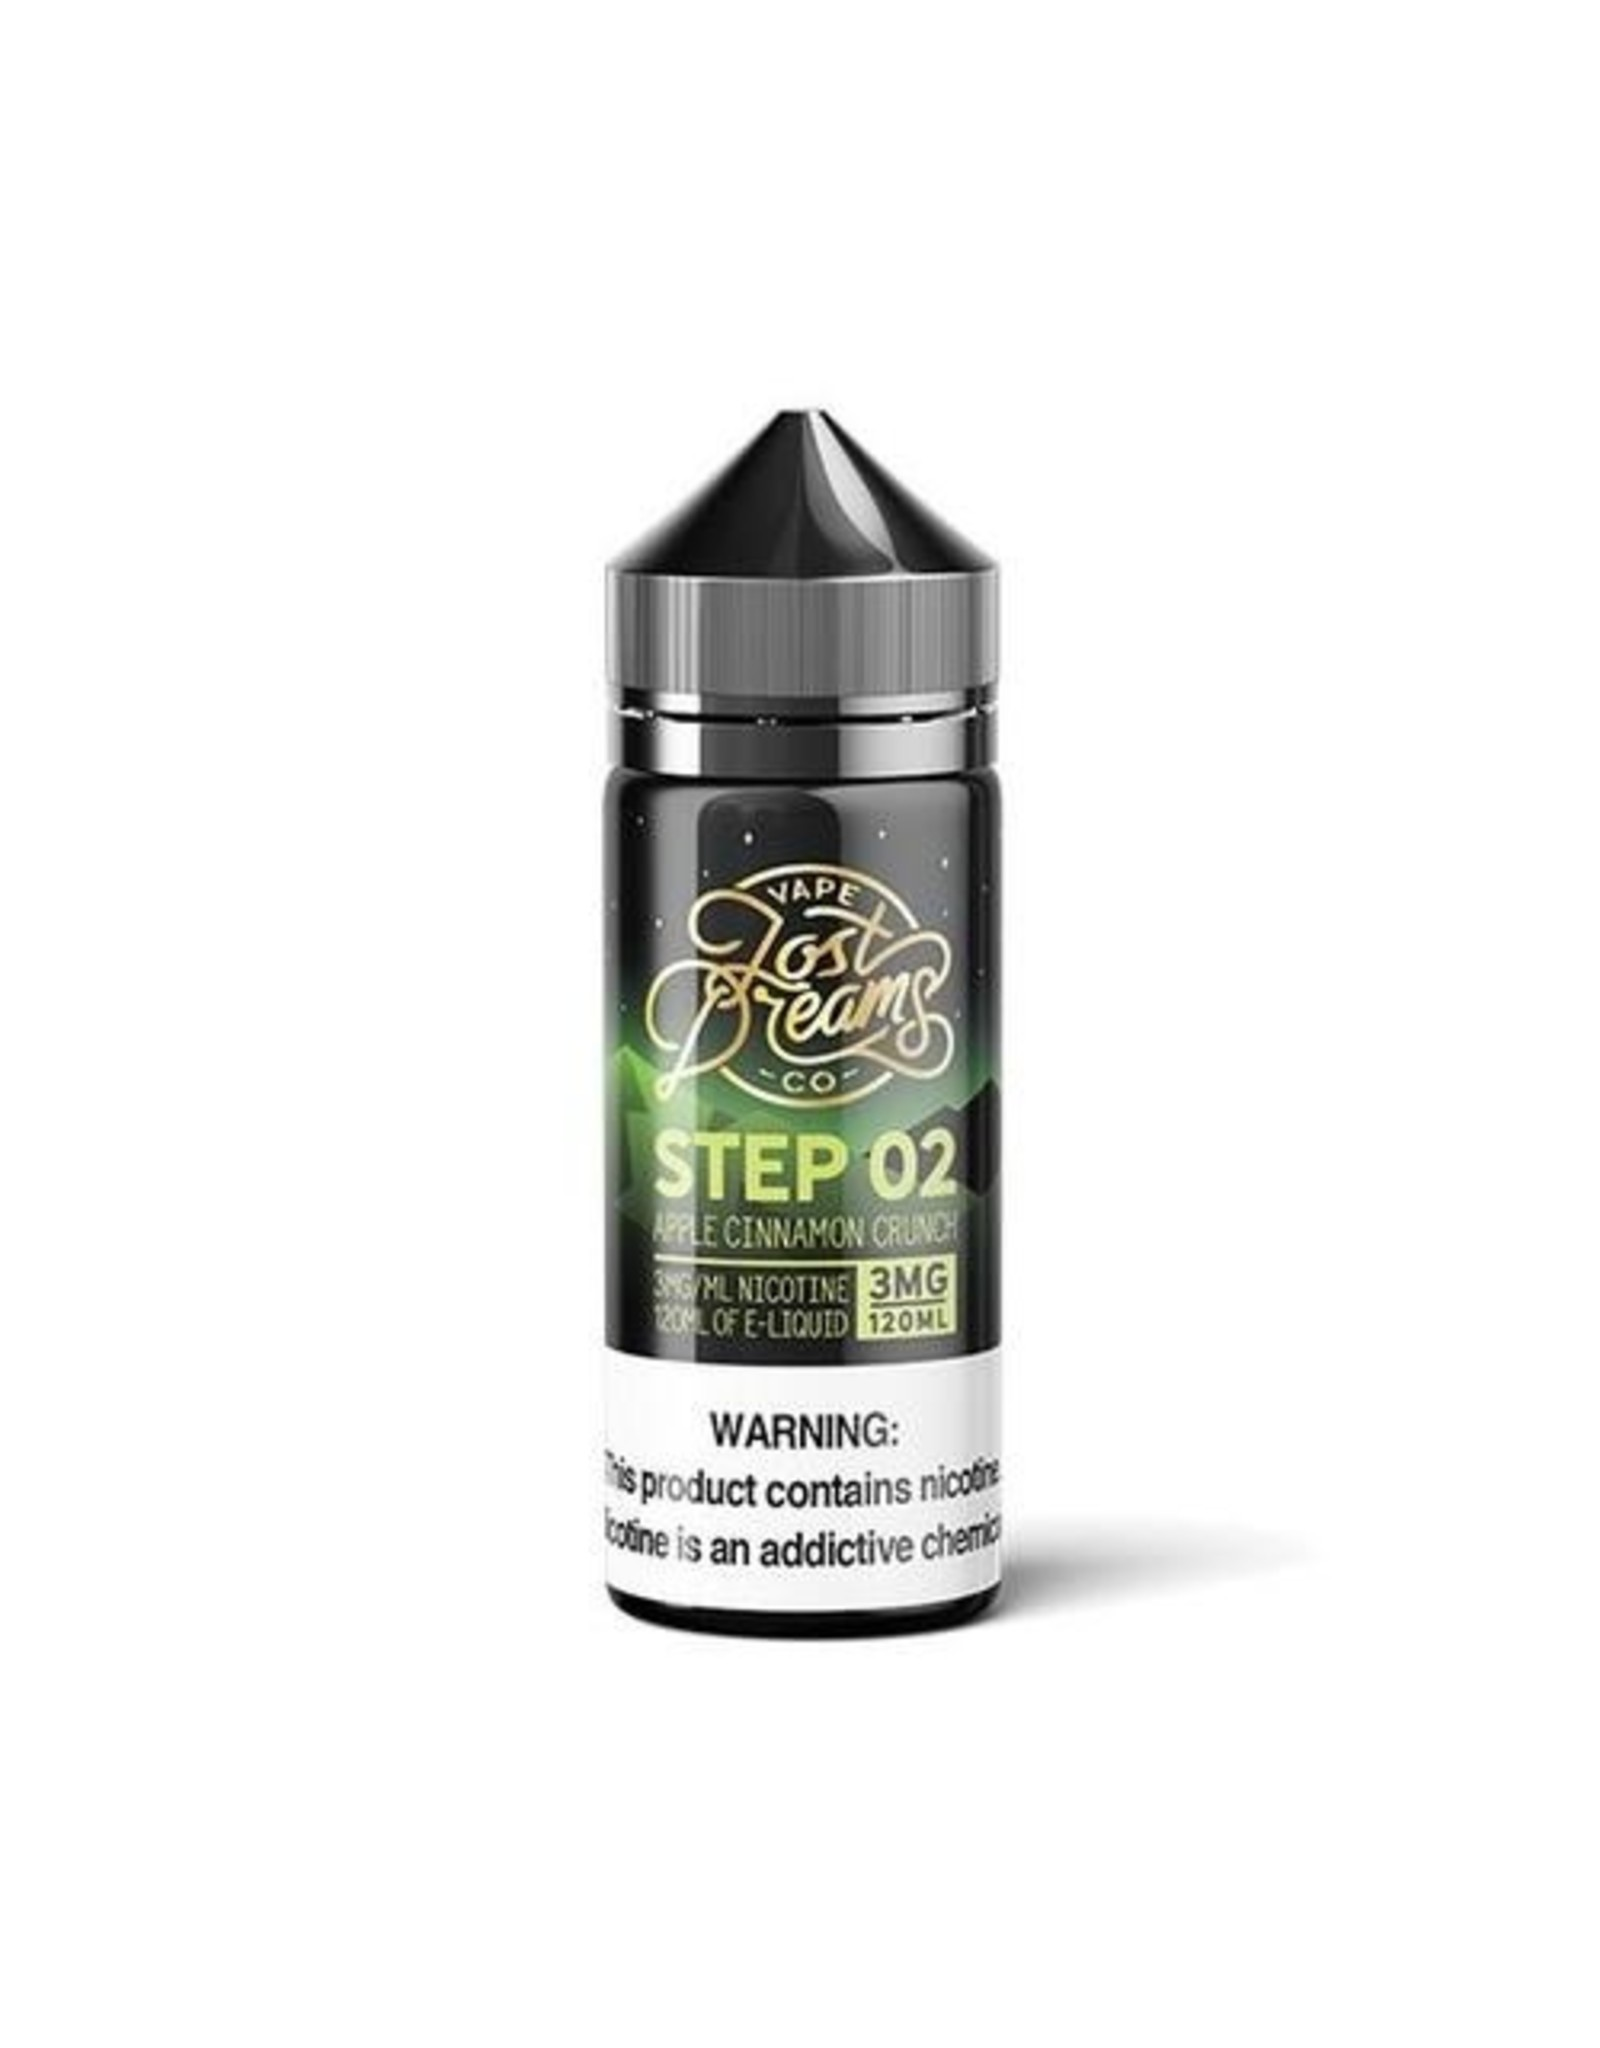 Lost Dreams Vape Co. Step 02 by Lost Dreams Vape Co.